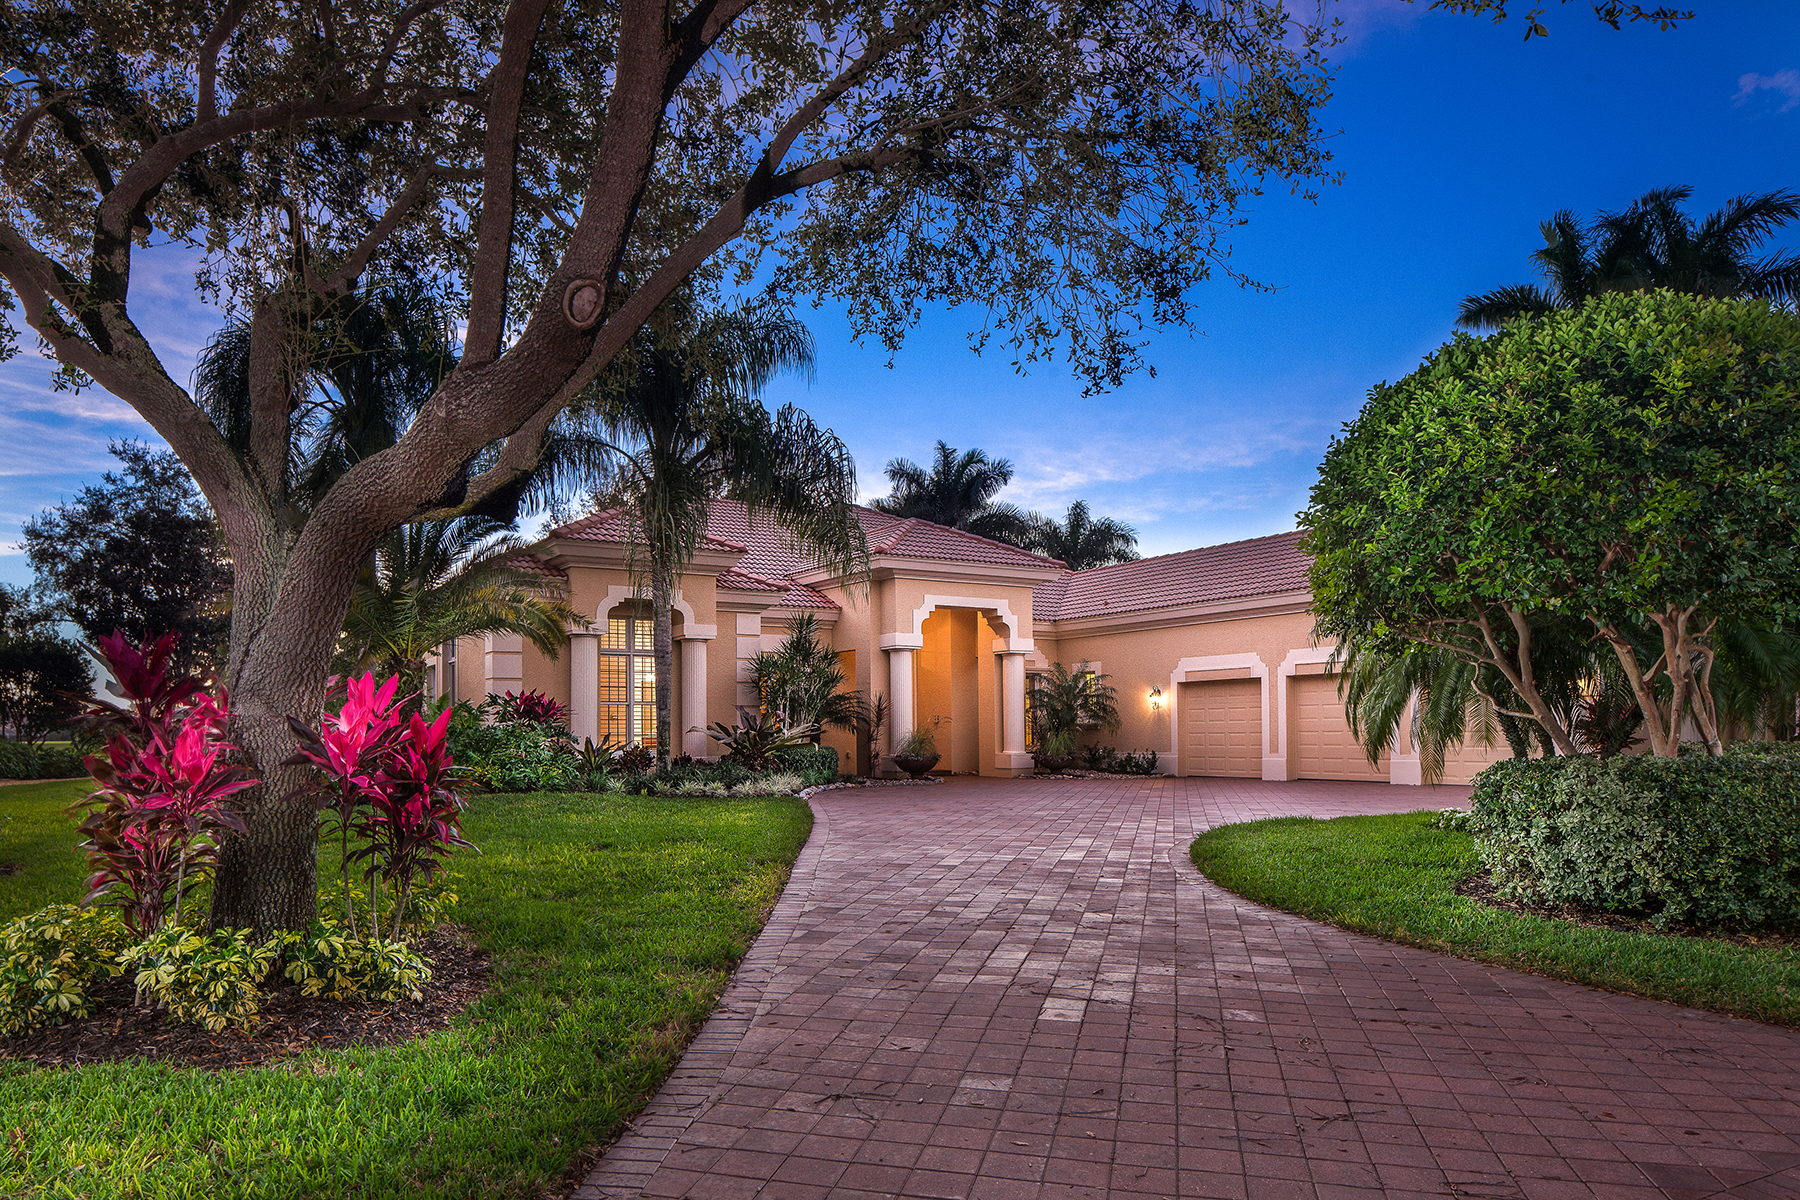 Casa Unifamiliar por un Venta en VINEYARDS - TERRACINA 448 Terracina Way Naples, Florida, 34119 Estados Unidos